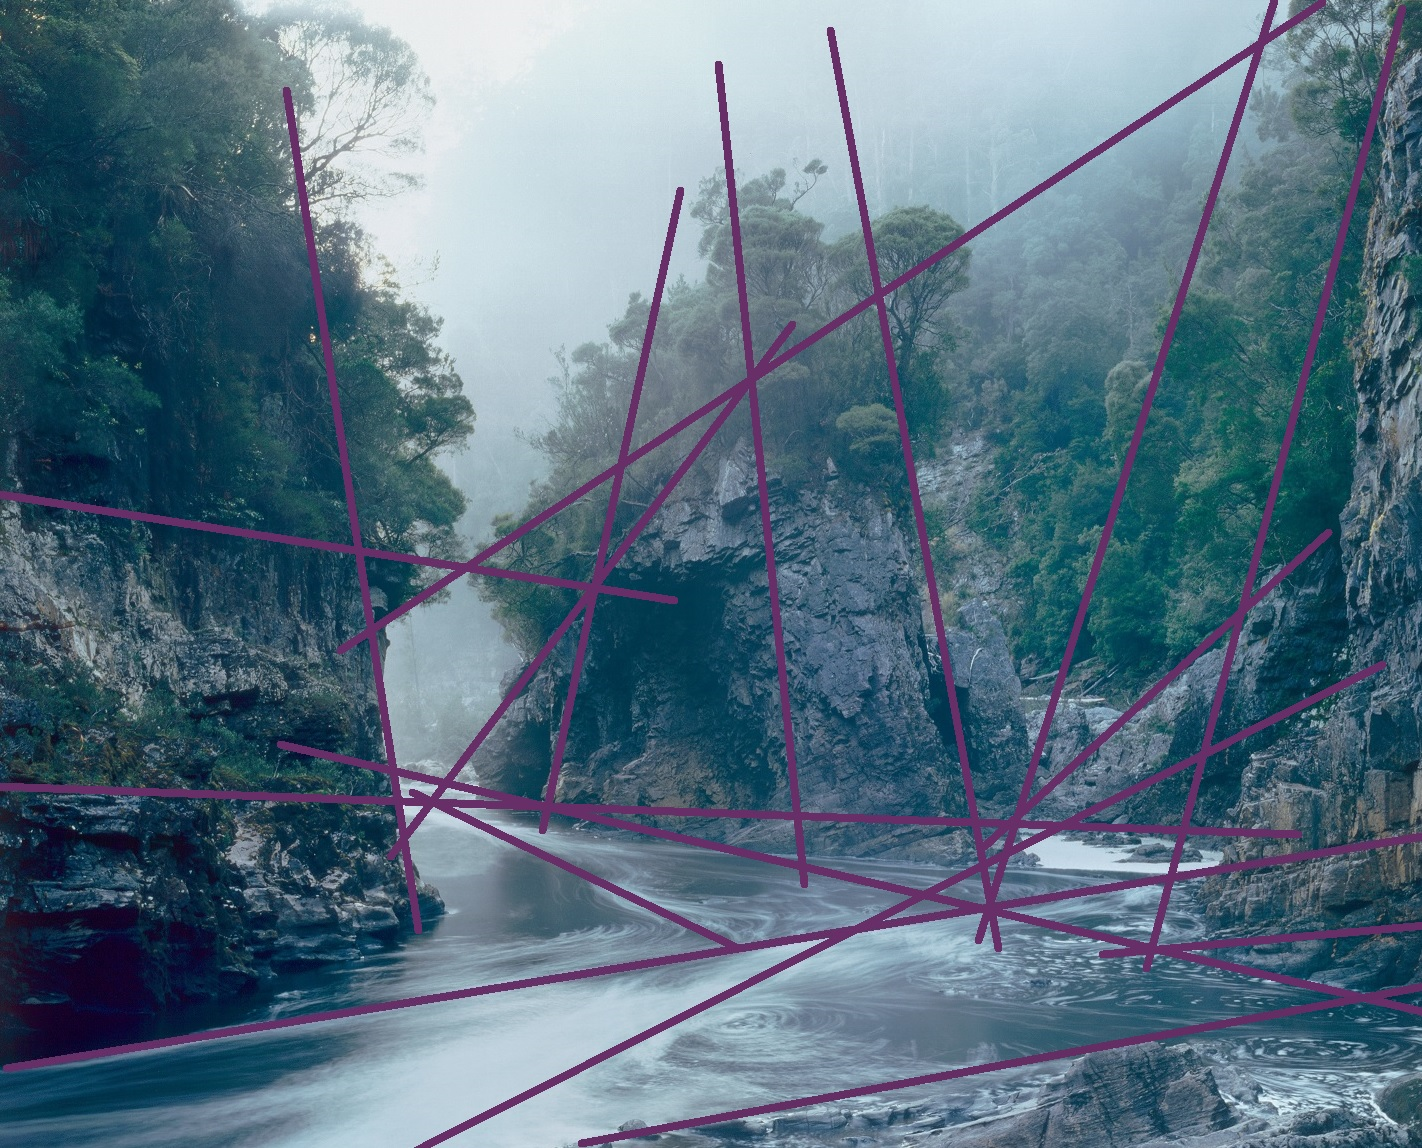 Alex Thomson, Angles 17, Drawn digital image (dimensions variable), from Peter Dombrovskis (1979), Rock Island Bend, Franklin River, South West Tasmania